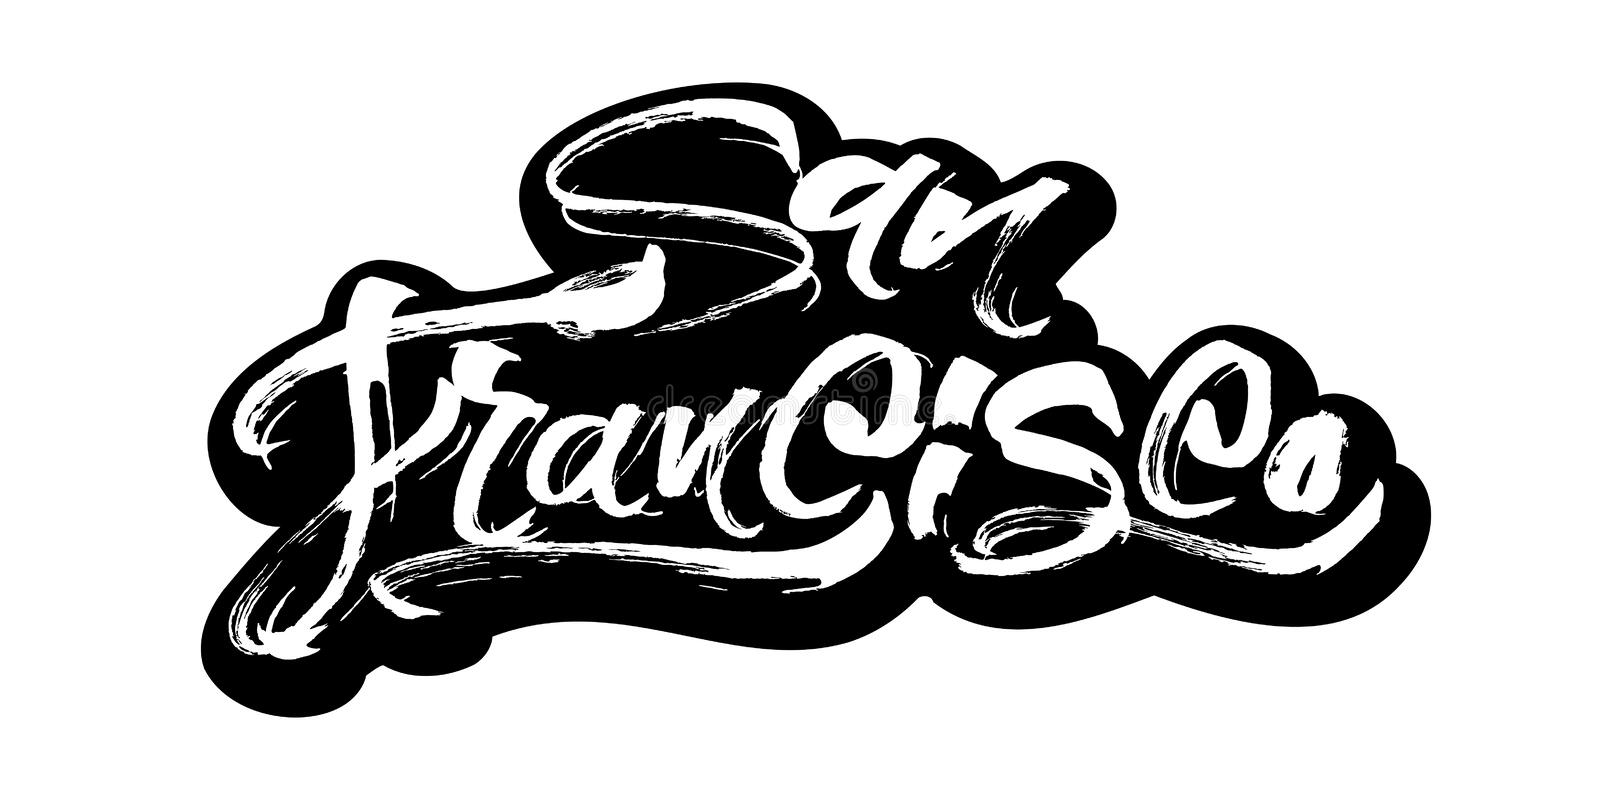 Download san francisco sticker modern calligraphy hand lettering for serigraphy print stock vector